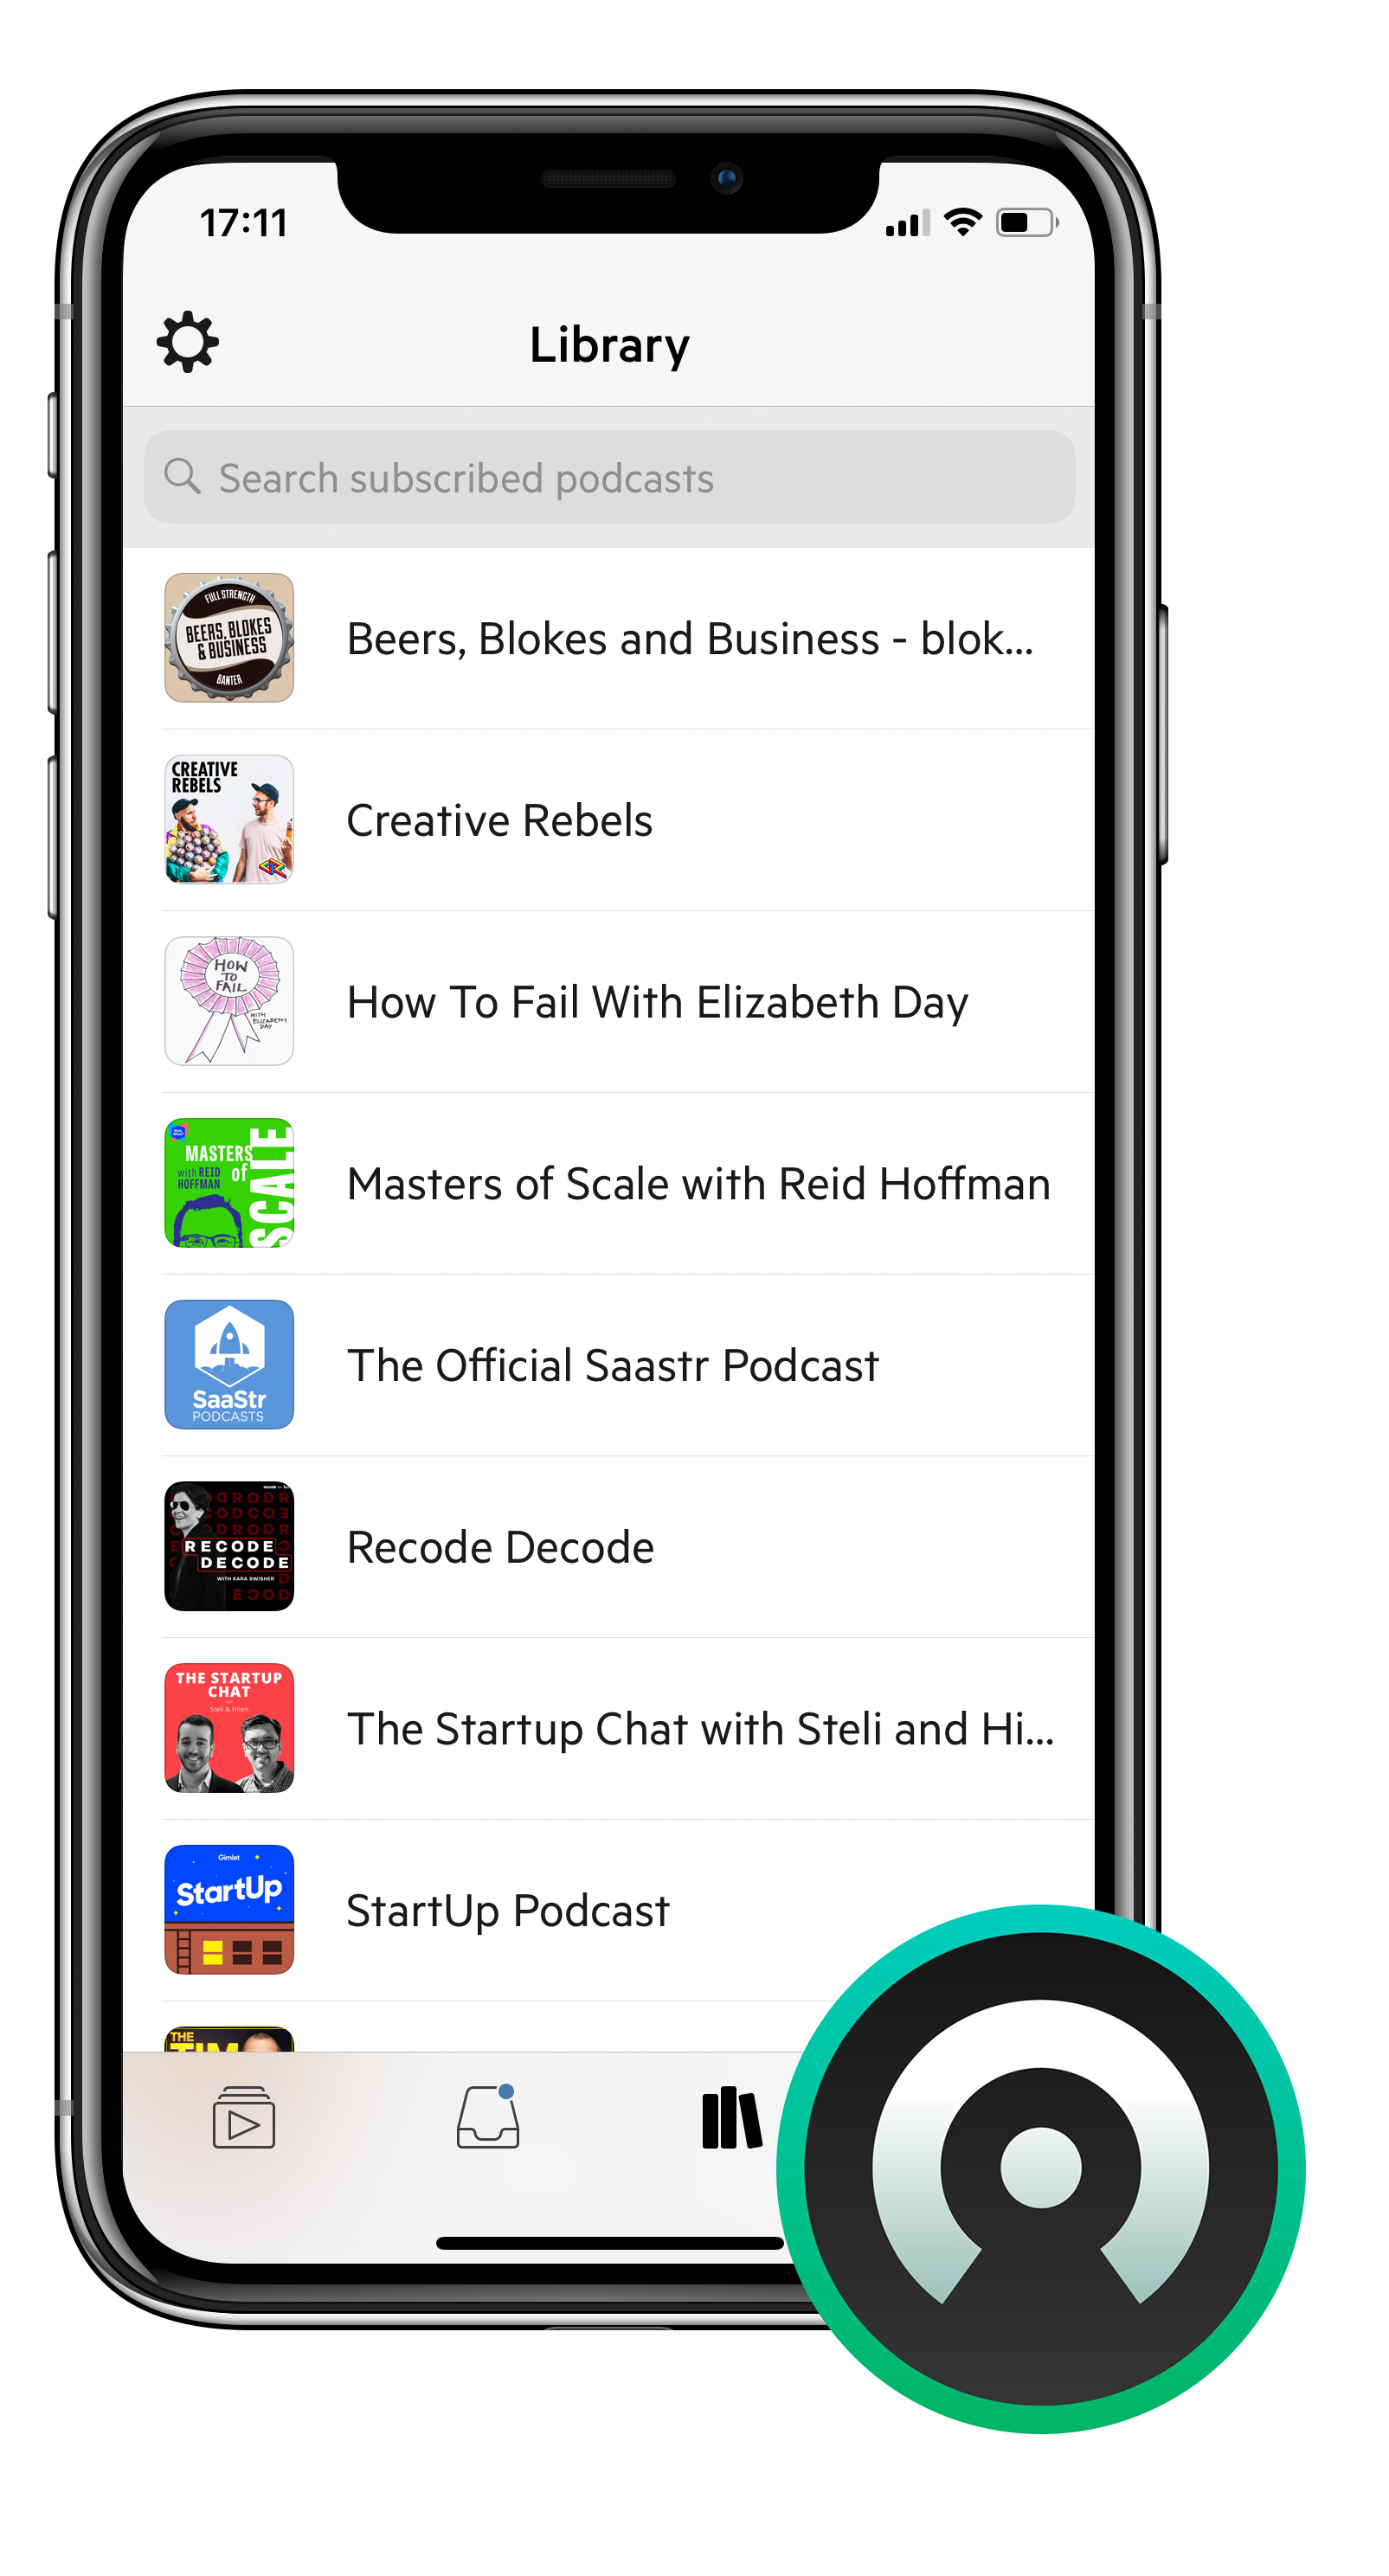 Castro (iOS) - Free - Best for: A beautifully organised podcast experienceFeatures:- New episodes and in the NEW tab, add the ones you want to your queue, clear the rest- Drag and Drop Queue editor- Dark mode and sleep timer- Library to review back catalogue, access starred shows and see listening history.